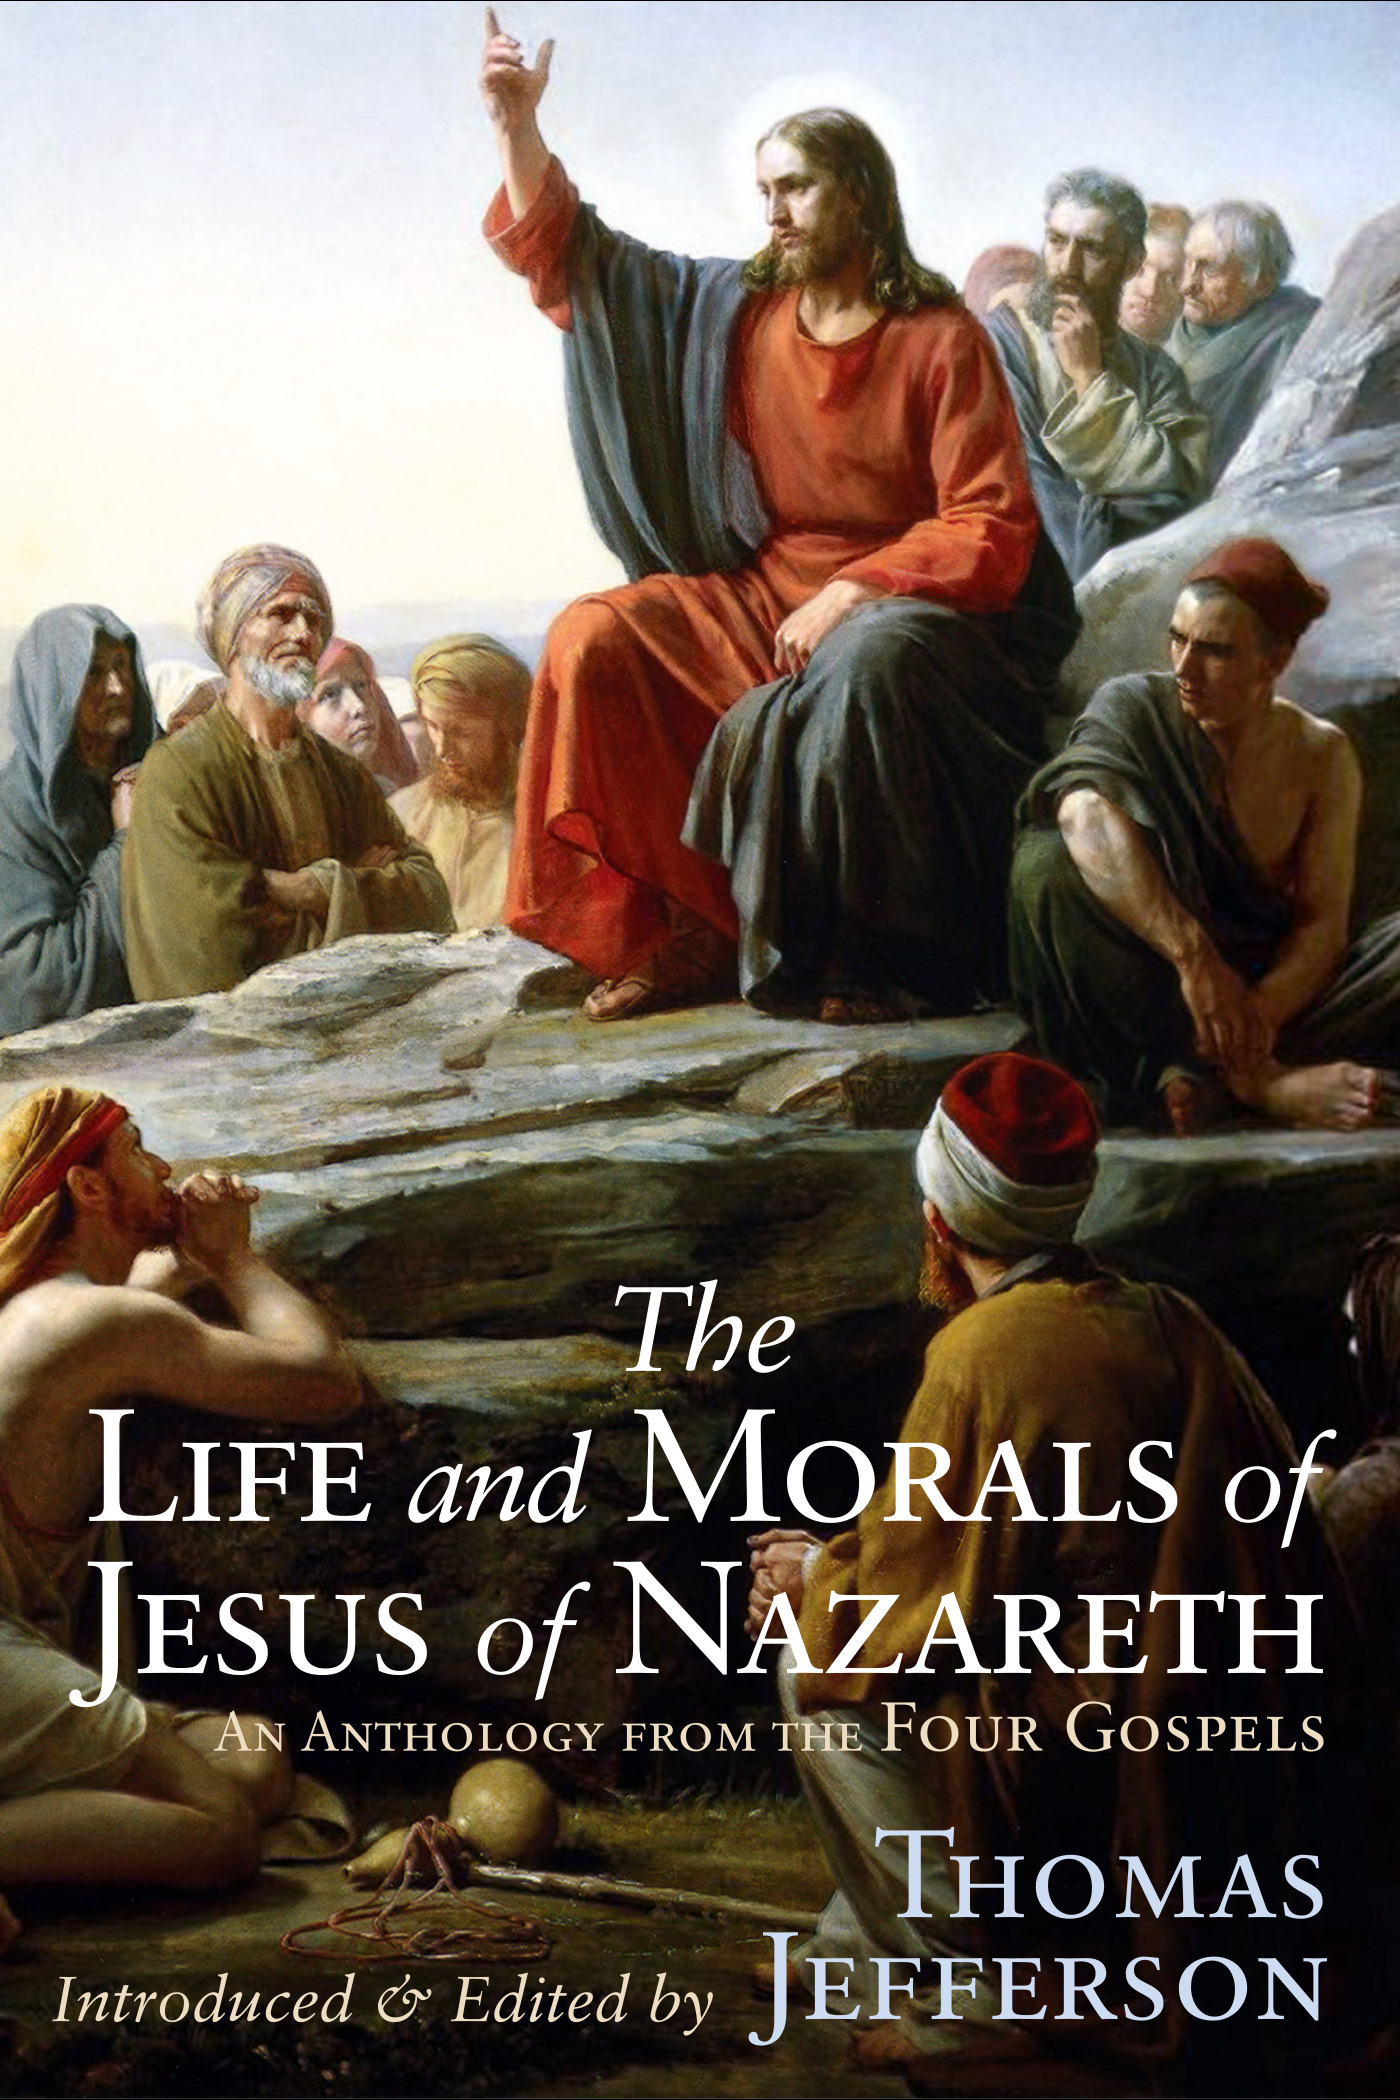 book cover for The Life & Morals of Jesus of Nazareth by Thomas Jefferson